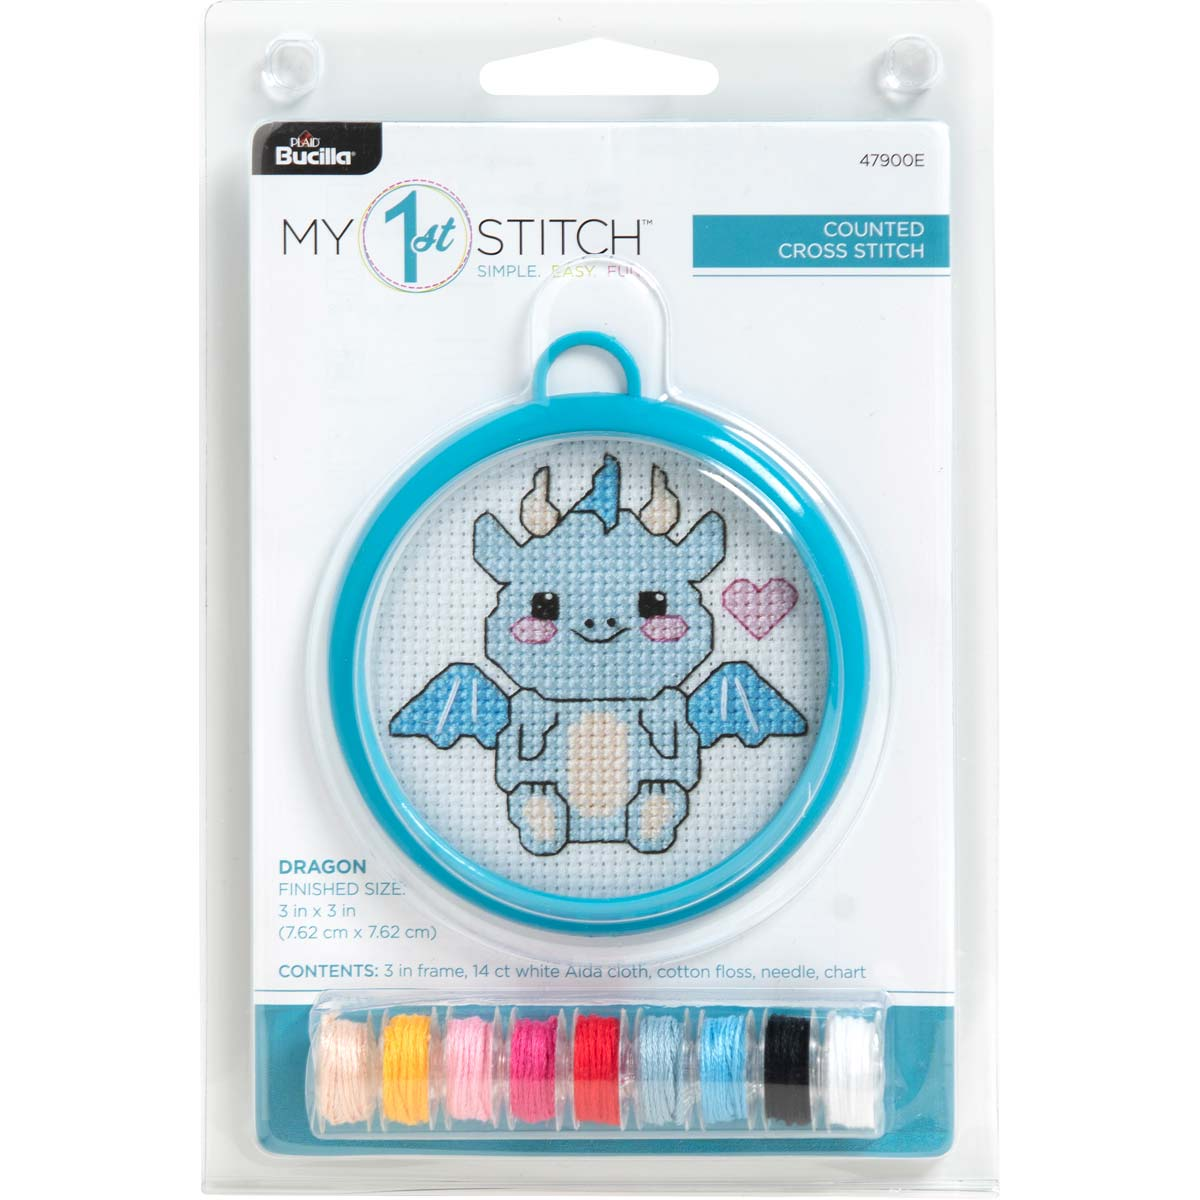 Bucilla ® My 1st Stitch™ - Counted Cross Stitch Kits - Mini - Dragon - 47900E